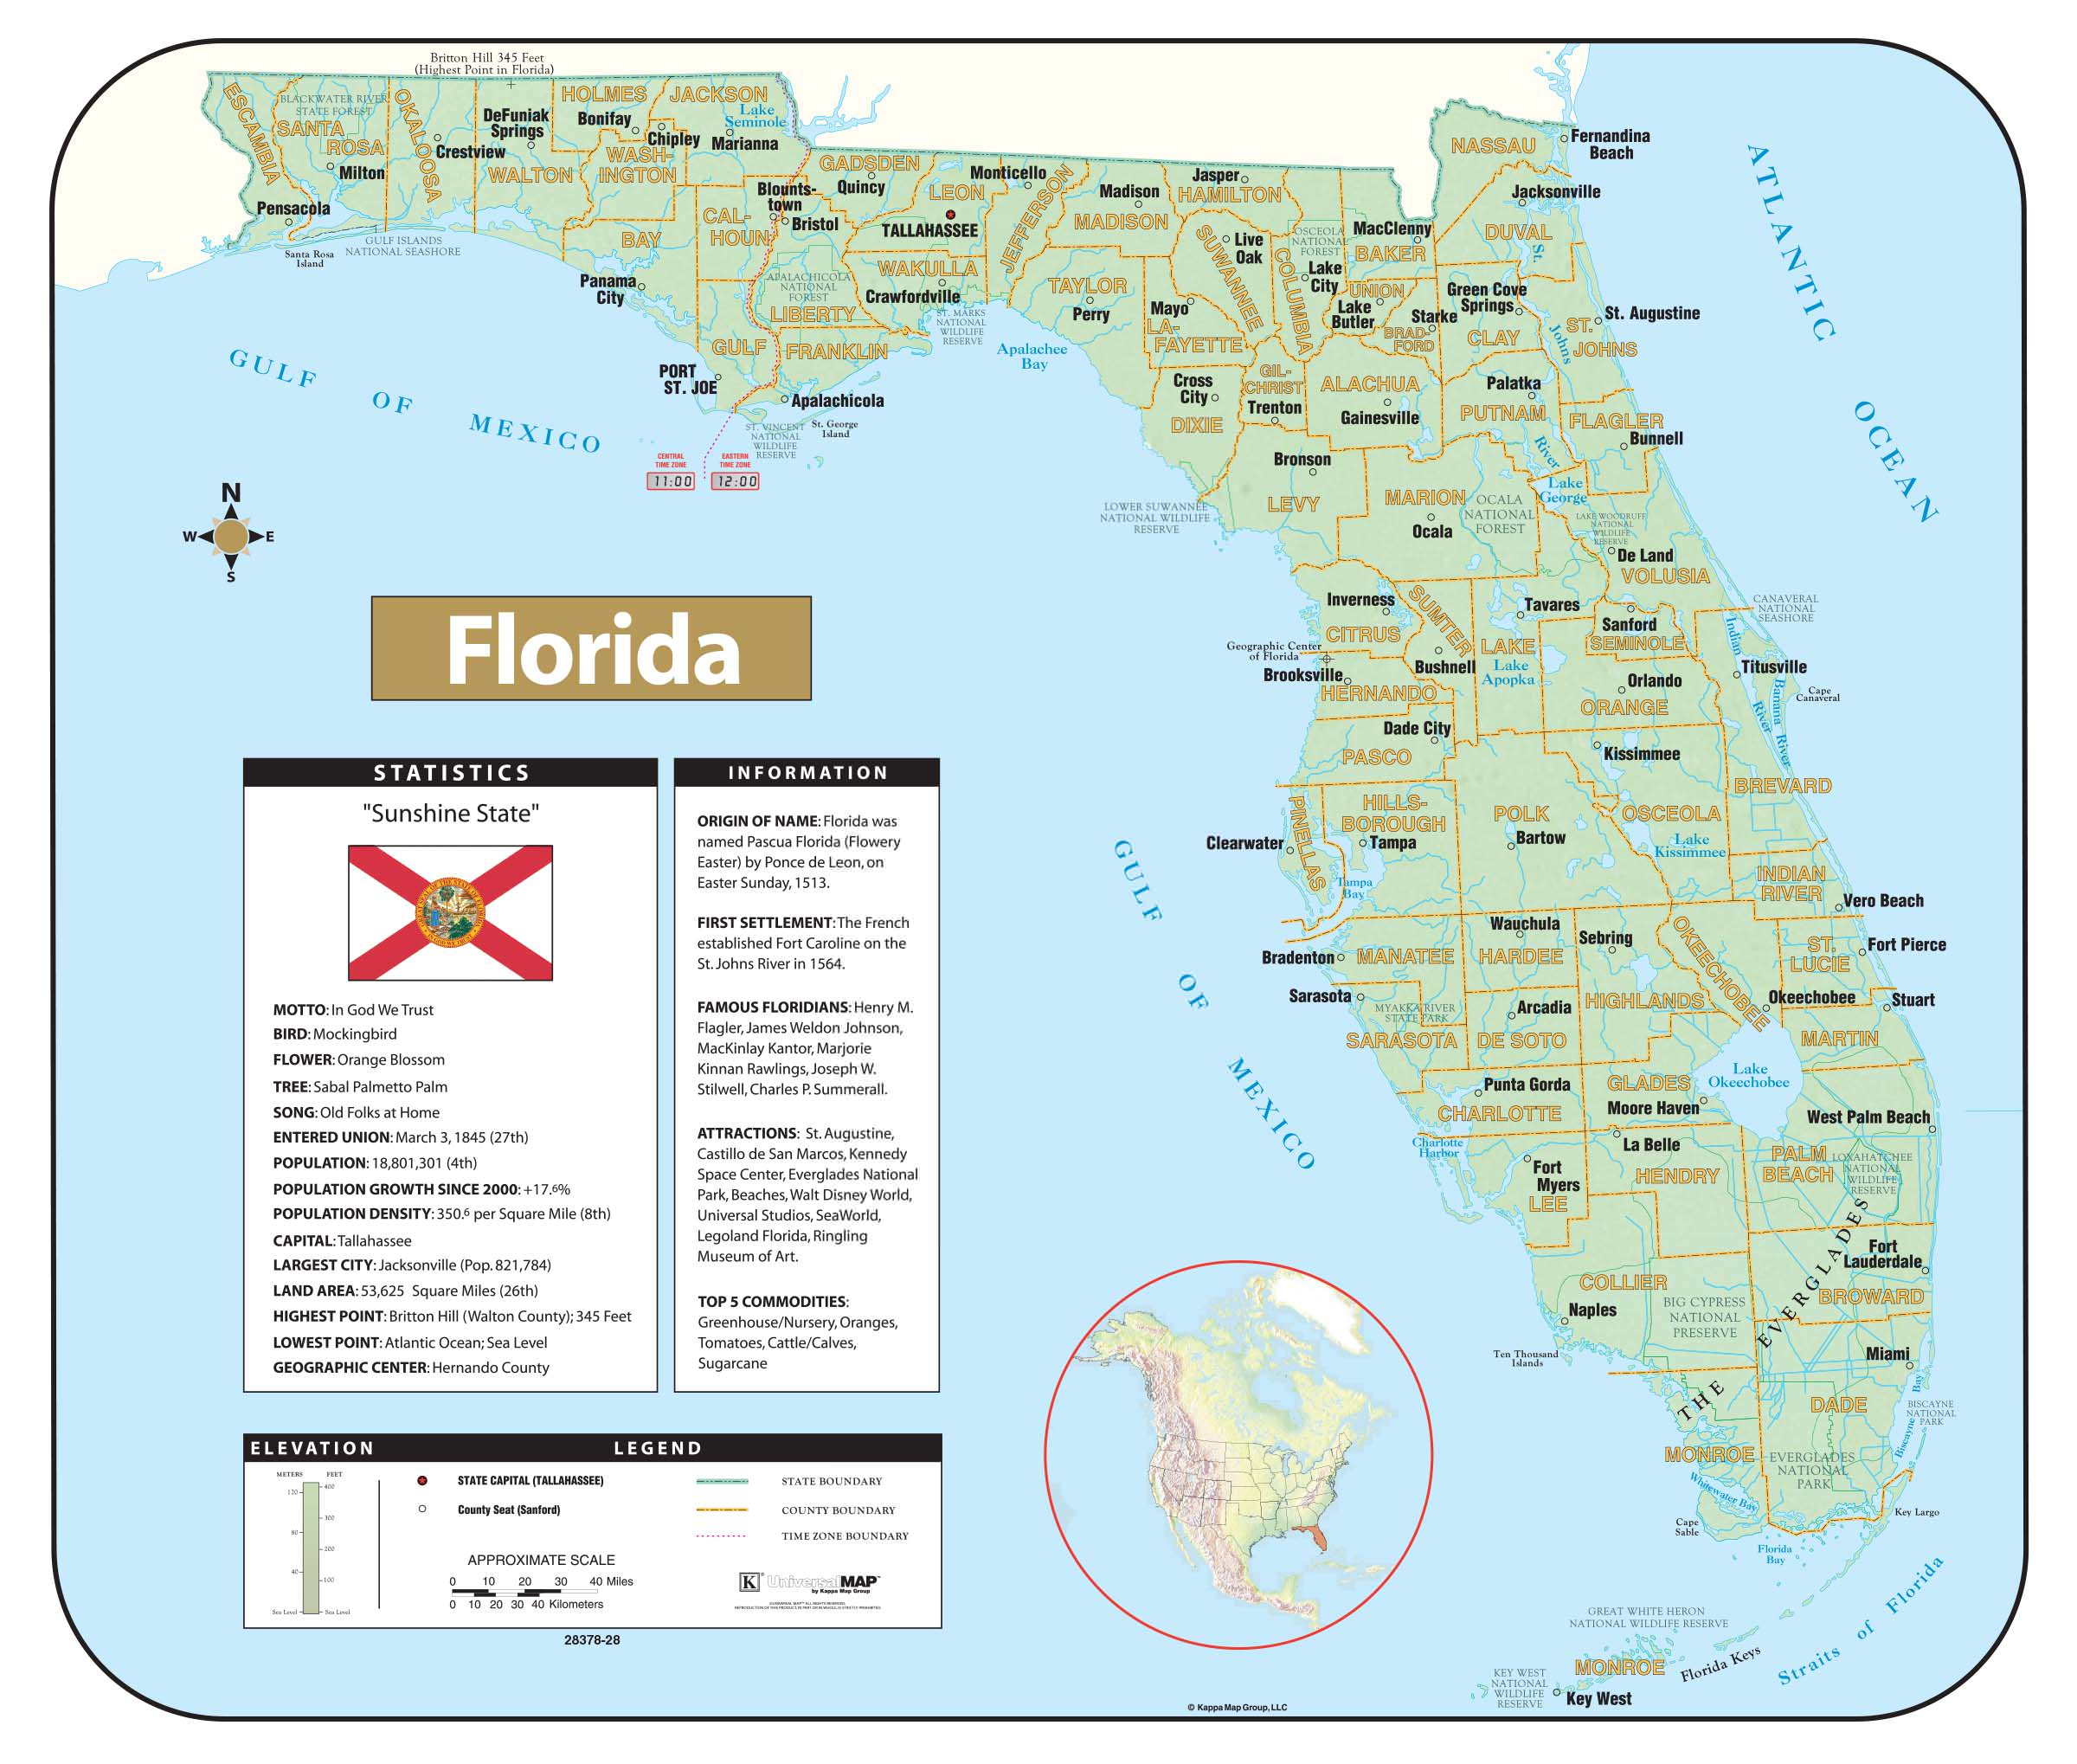 Map De Florida.Florida Shaded Relief Map Kappa Map Group